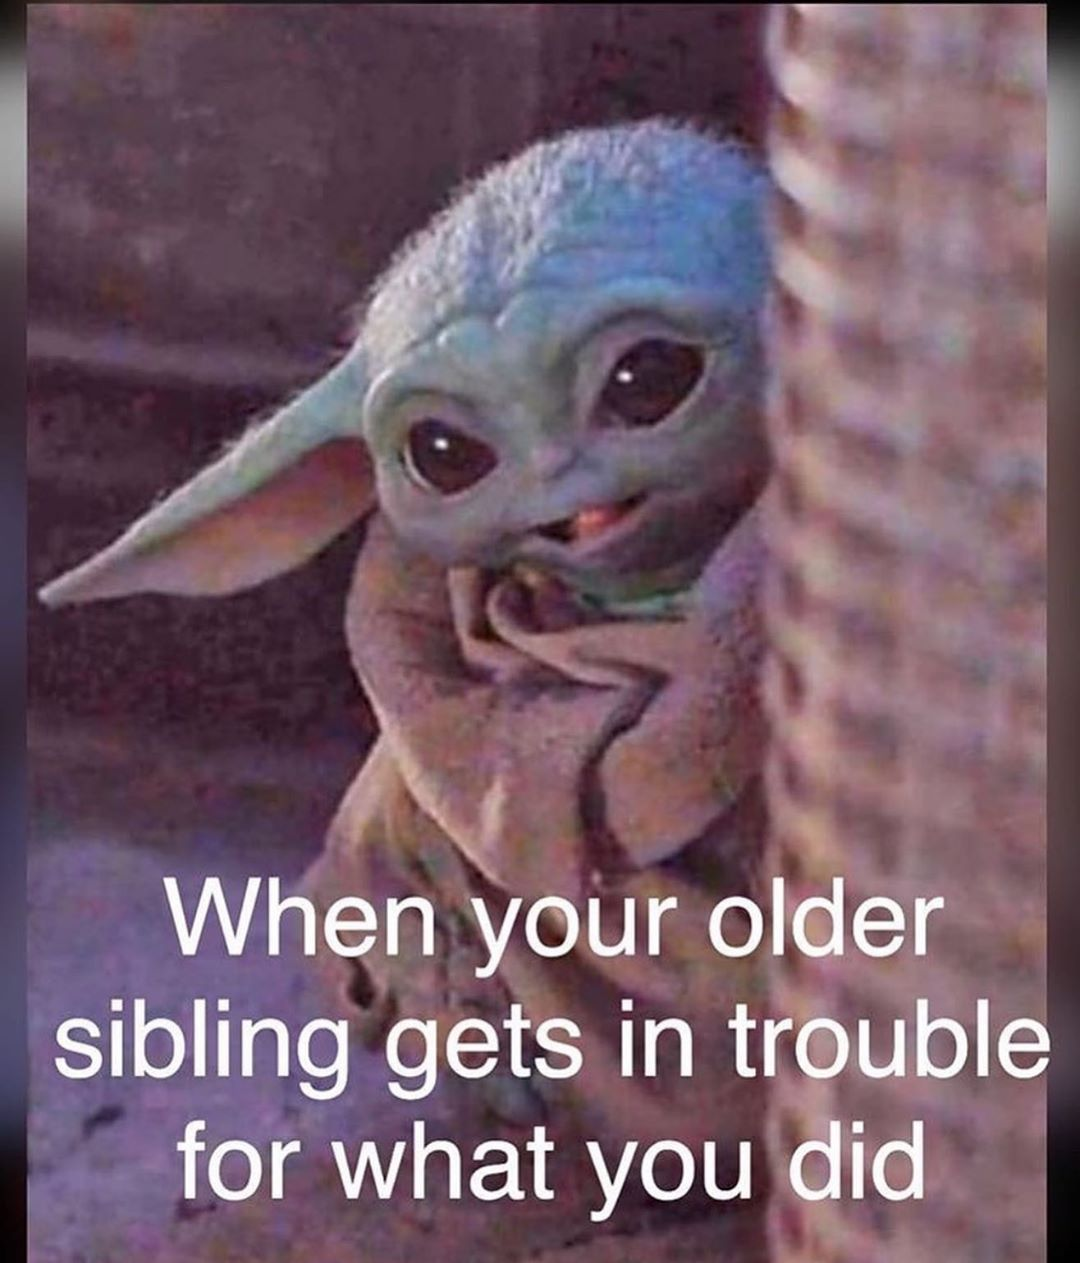 Your Daily Dose Of Baby Yoda On Instagram Tag Them For More Follow Memesbybabyyoda Starwarsfans Funny Baby Quotes Funny Memes Me Too Meme